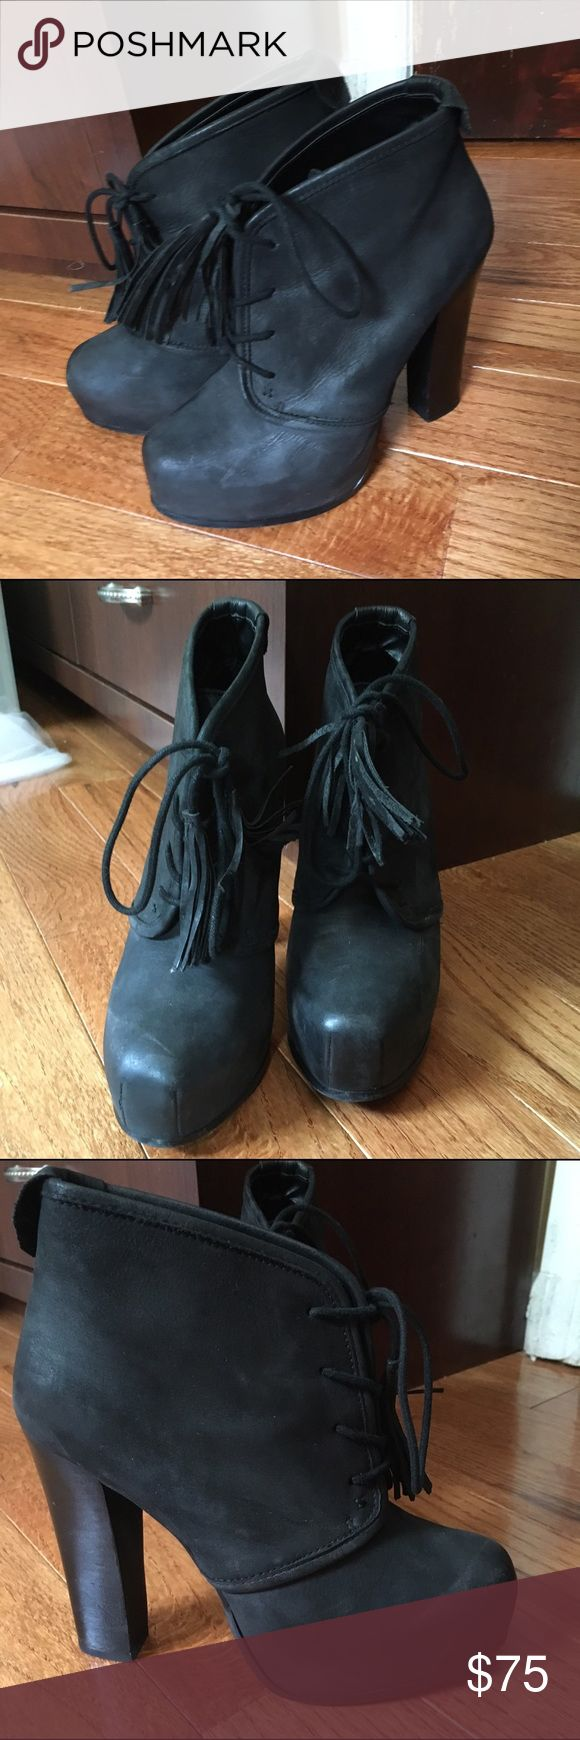 Steve Madden Black heeled booties Gorgeous Steve Madden black chunky heeled booties. Too small :( Steve Madden Shoes Ankle Boots & Booties